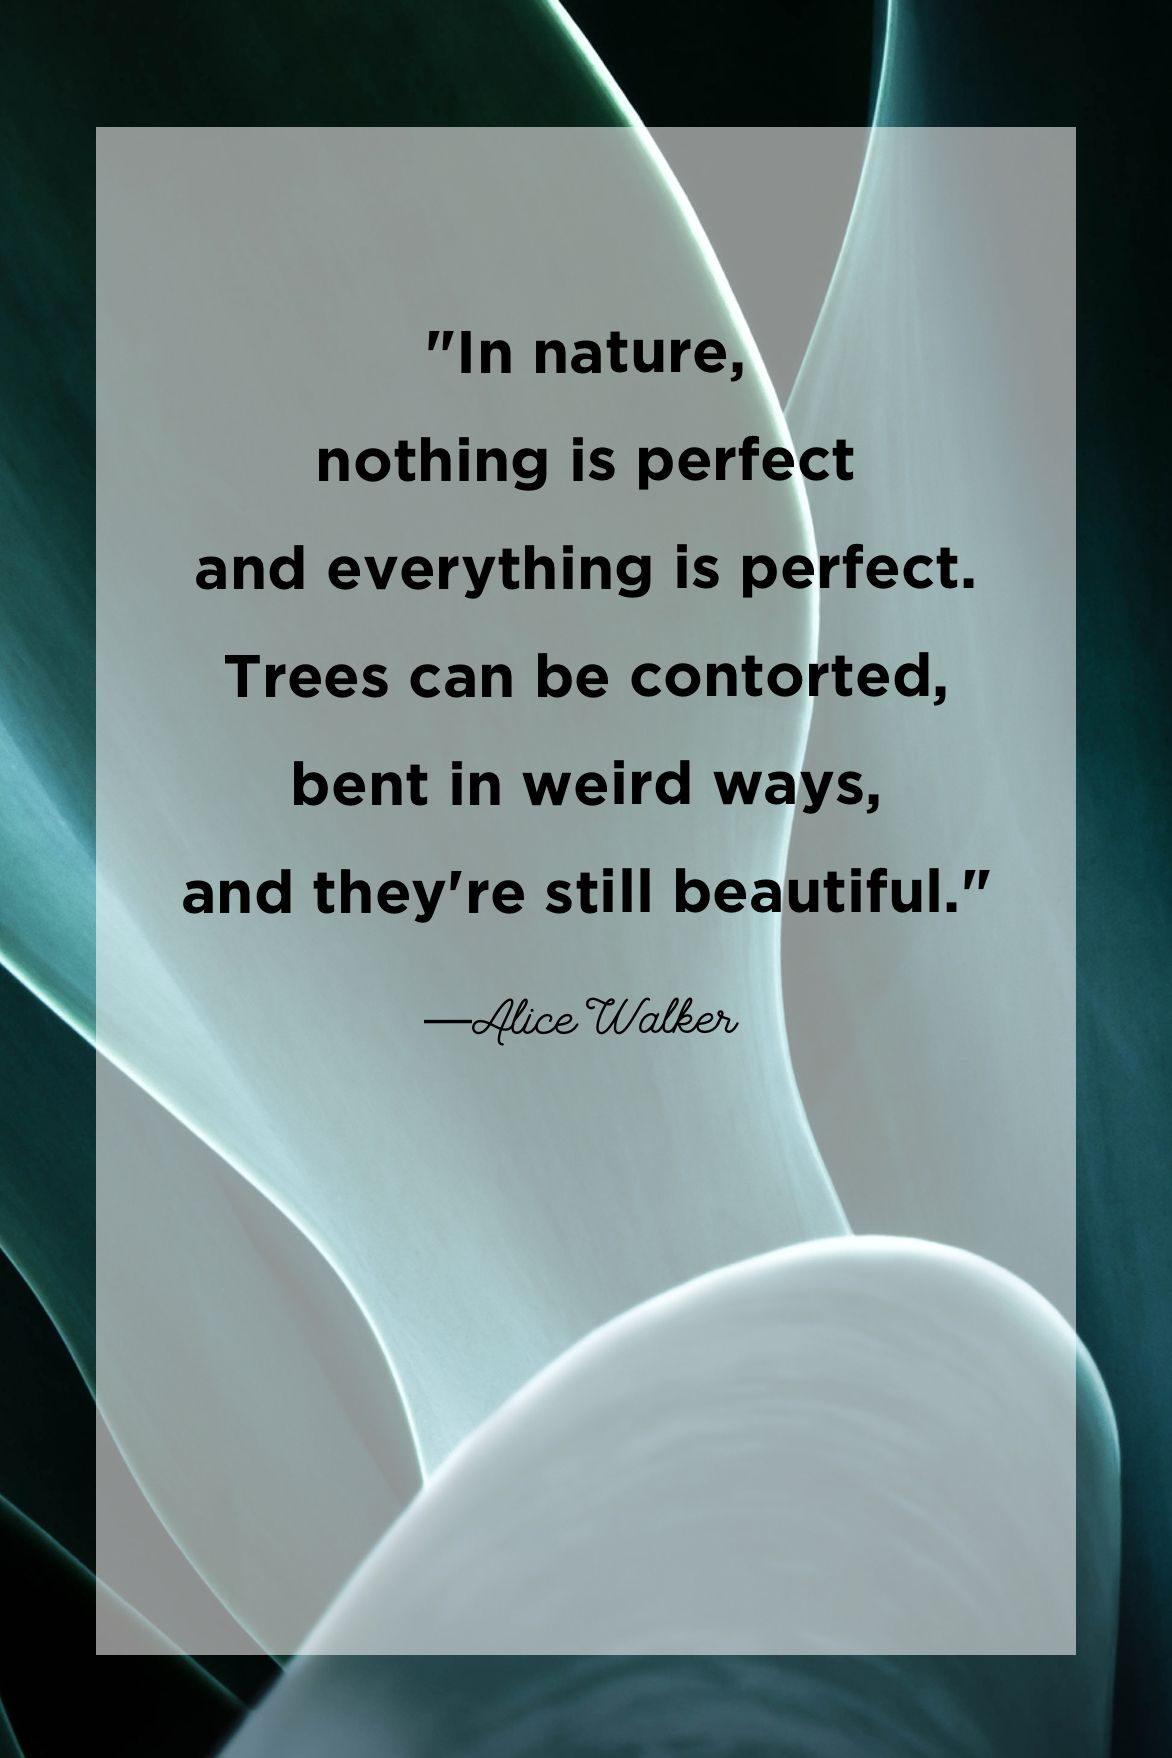 10 Best Nature Quotes - Inspirational Sayings About Nature